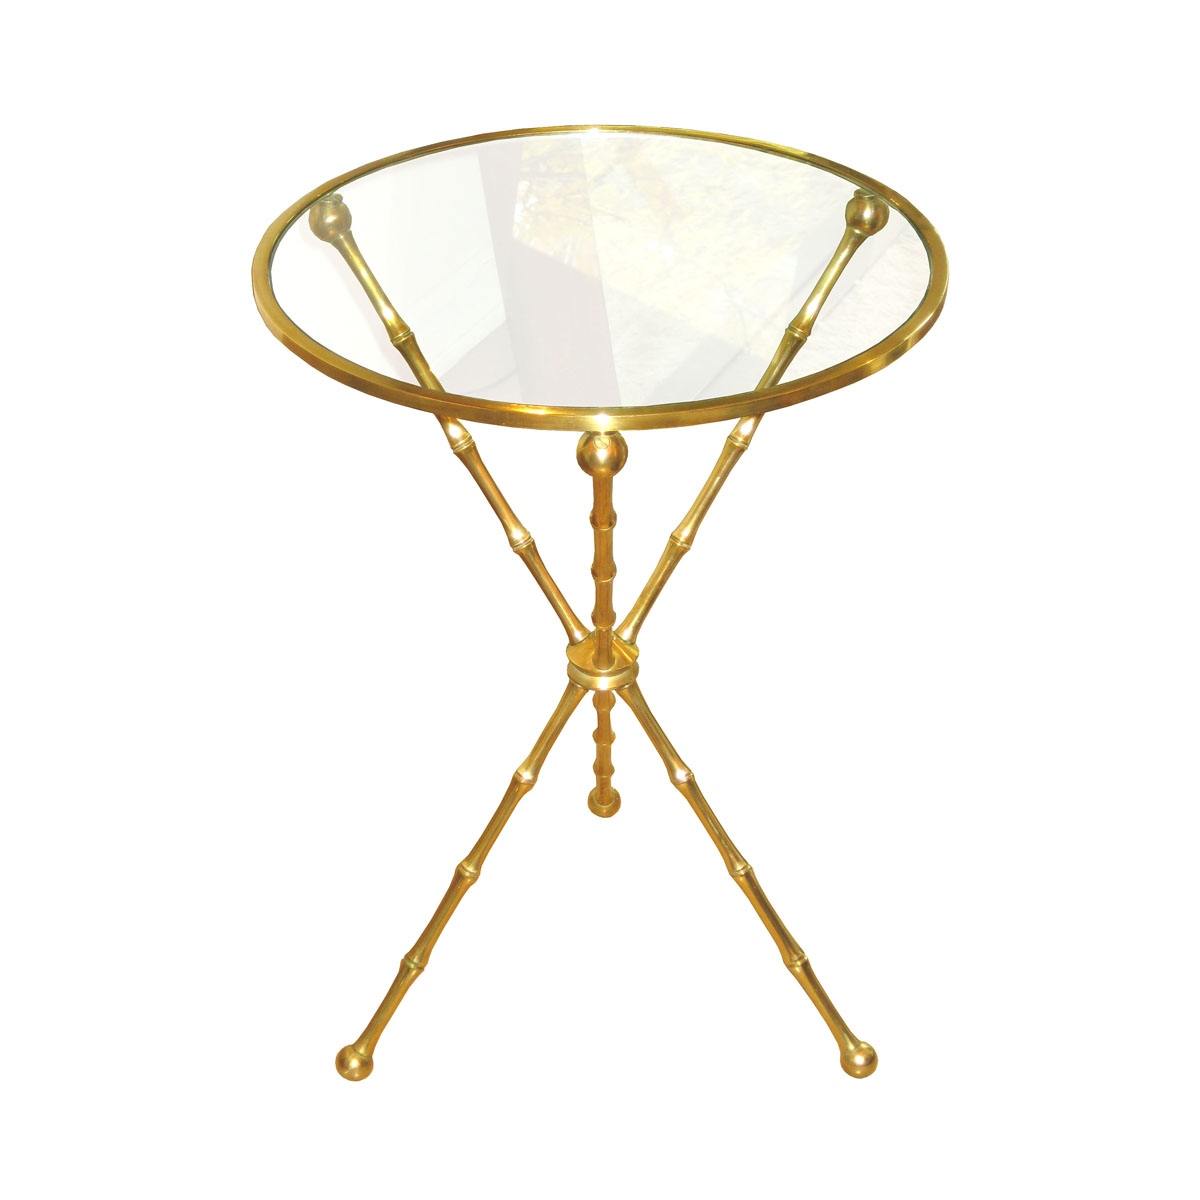 Single brass faux bamboo tripod side table with glass top for Bamboo side table